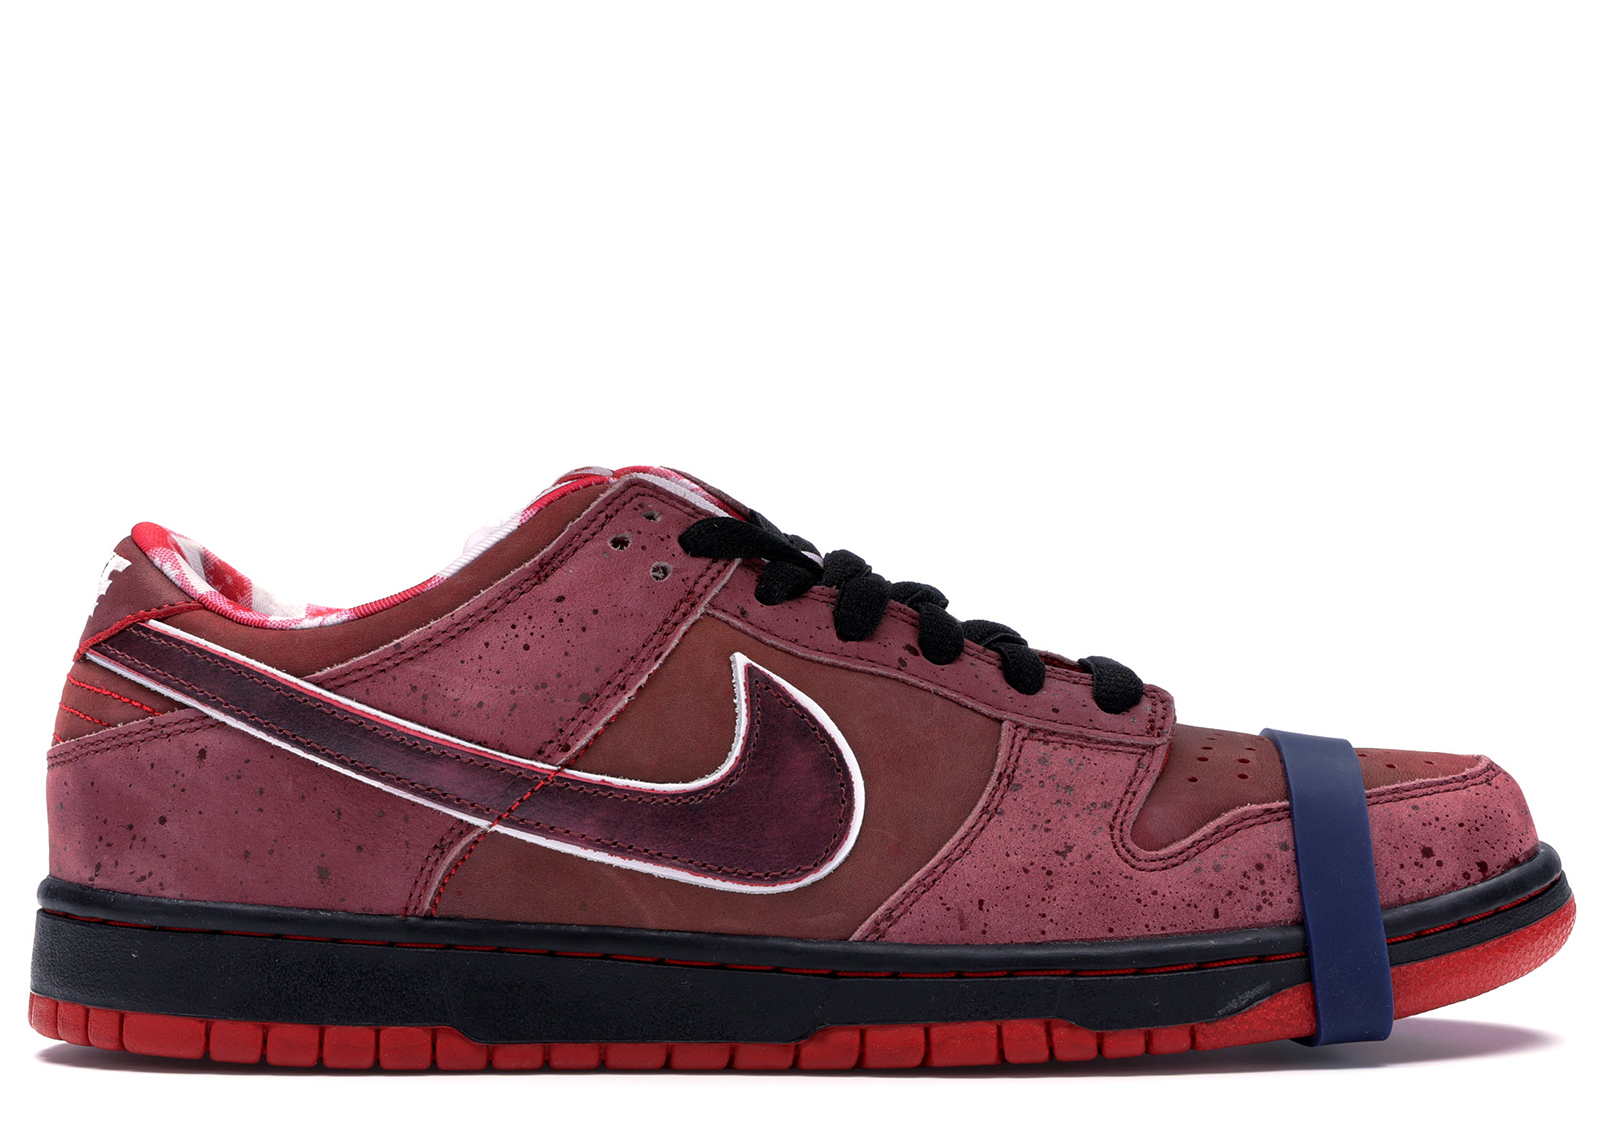 Nike Dunk SB Low Red Lobster - 313170-661